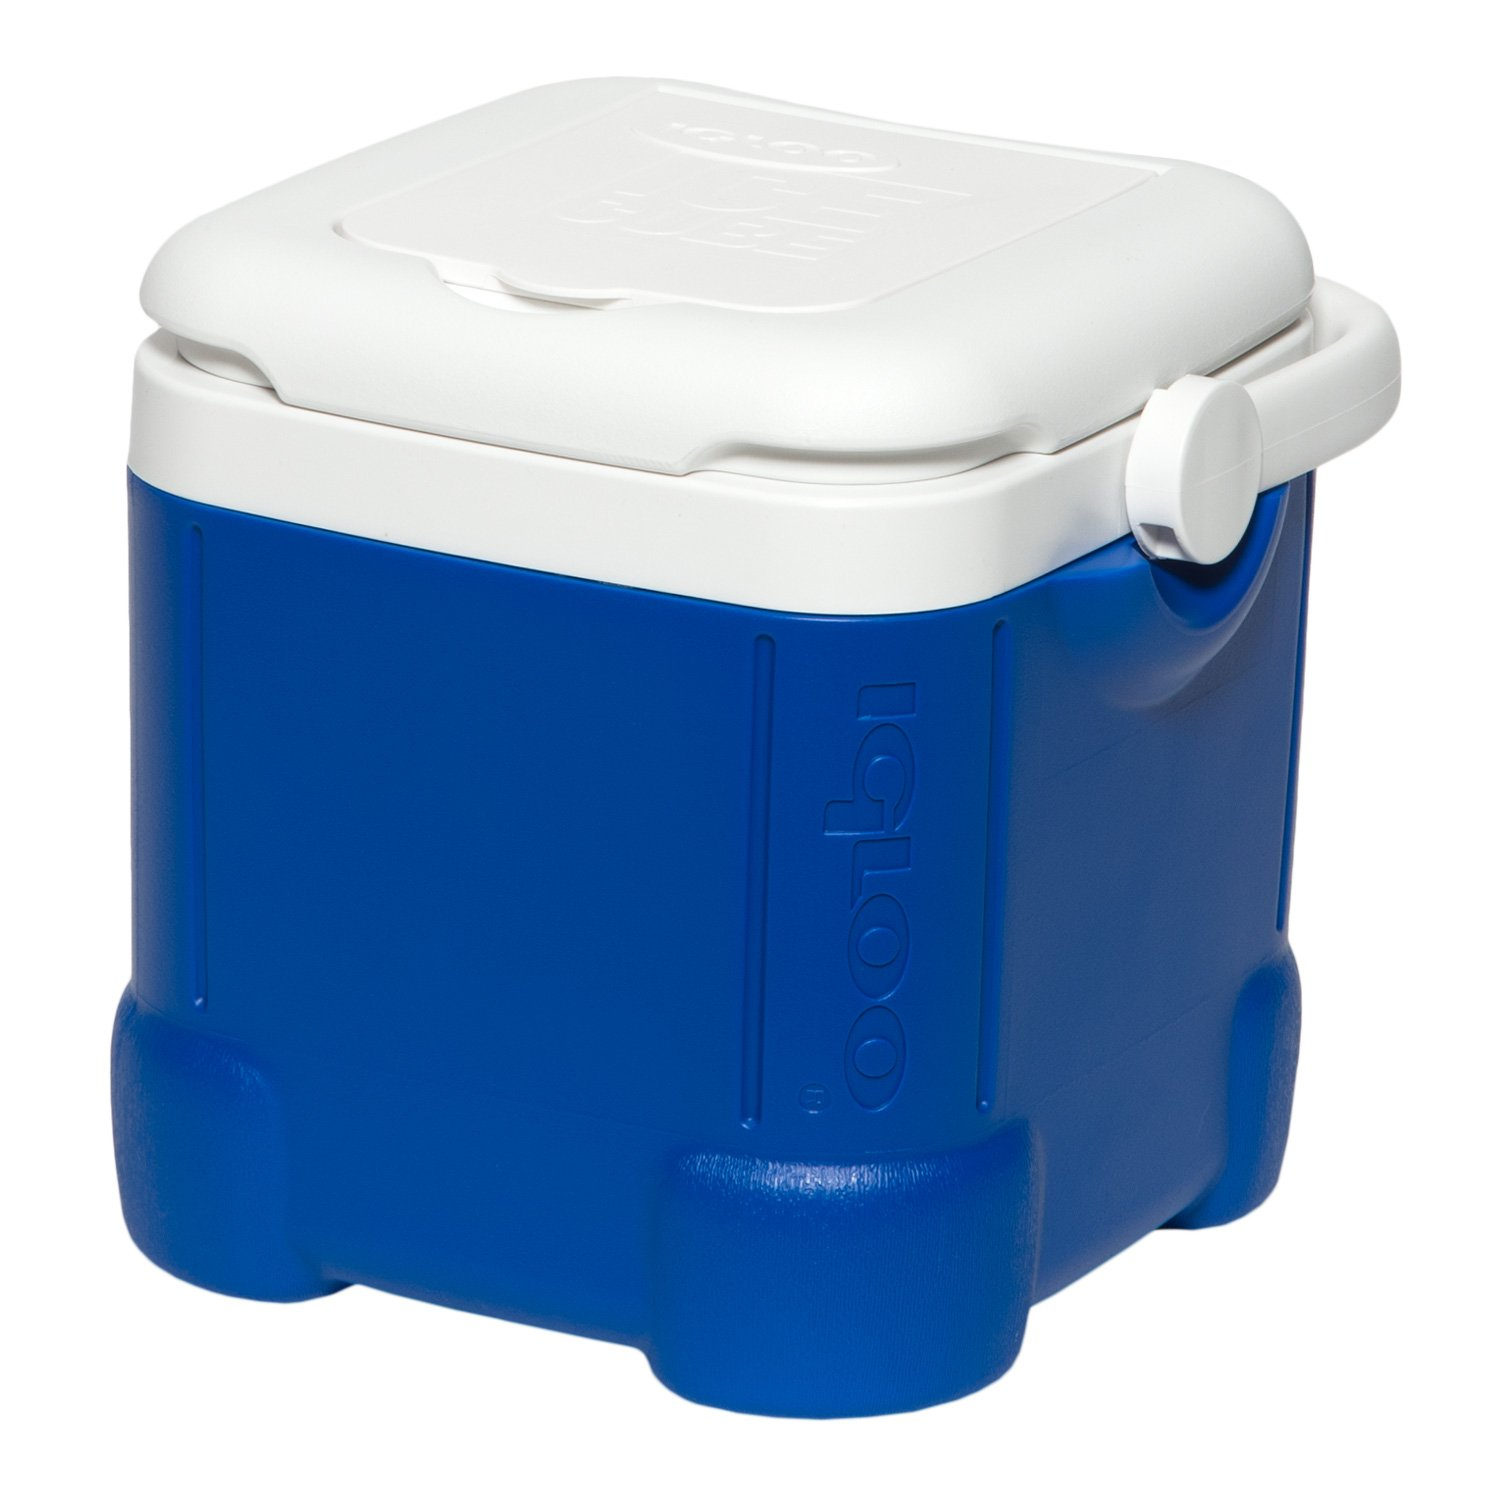 Igloo Ice Cube Cooler (14-Can Capacity, Ocean Blau) by Igloo